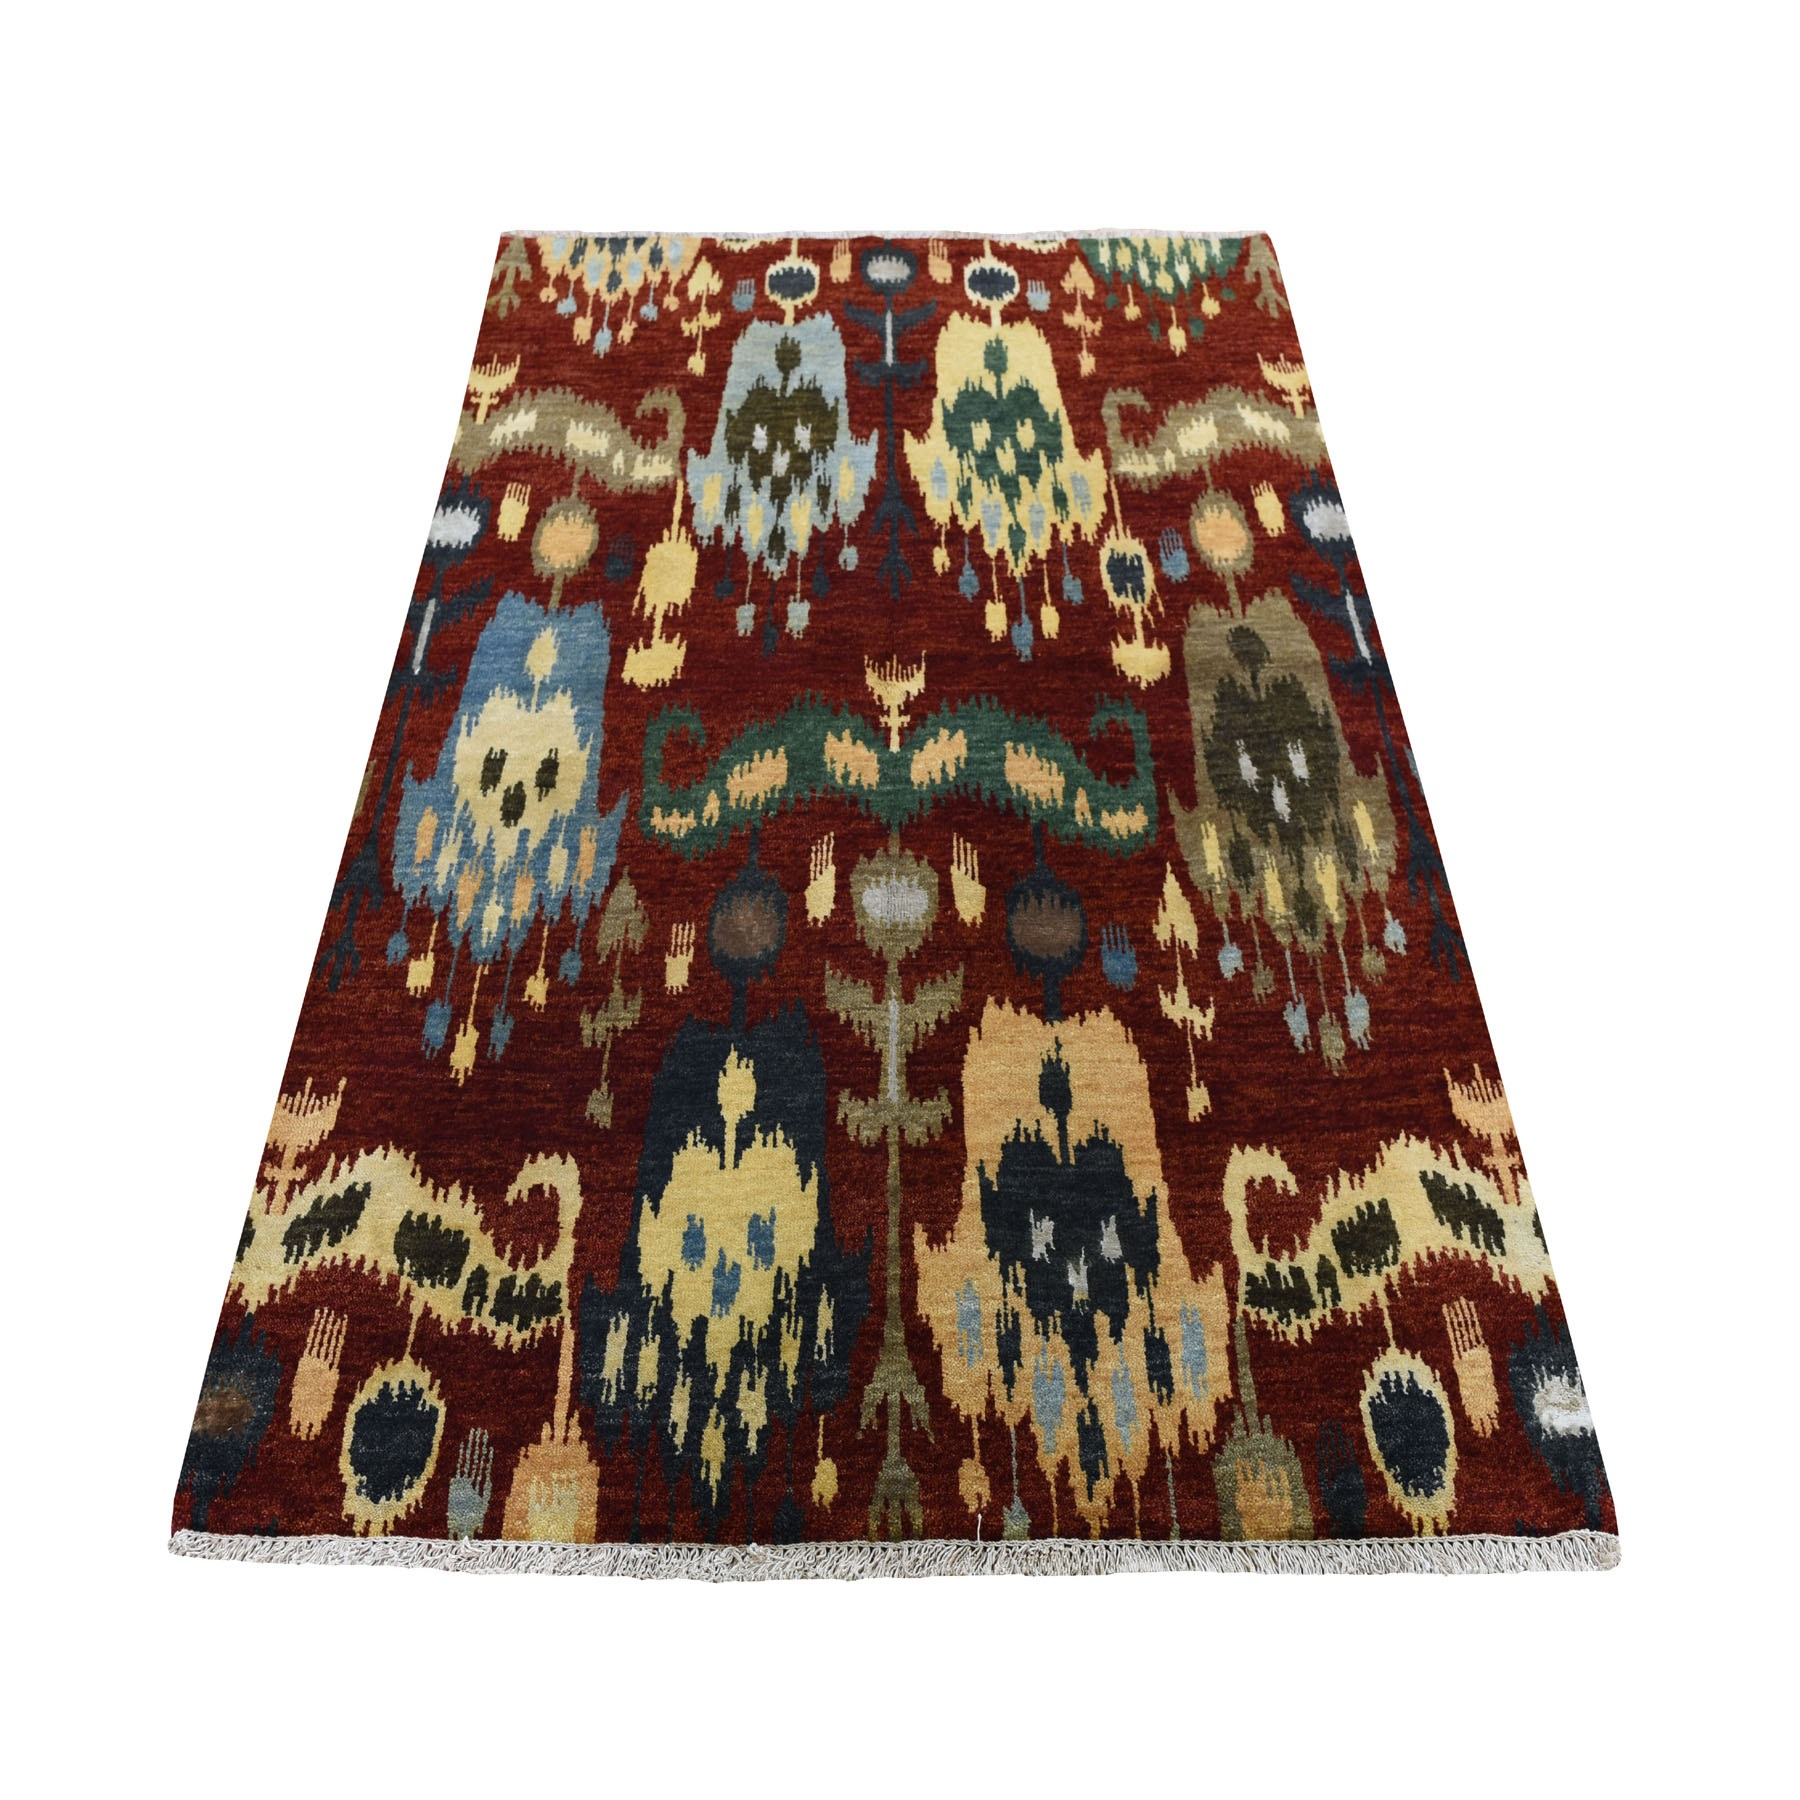 ikat and suzani design rugs LUV423360